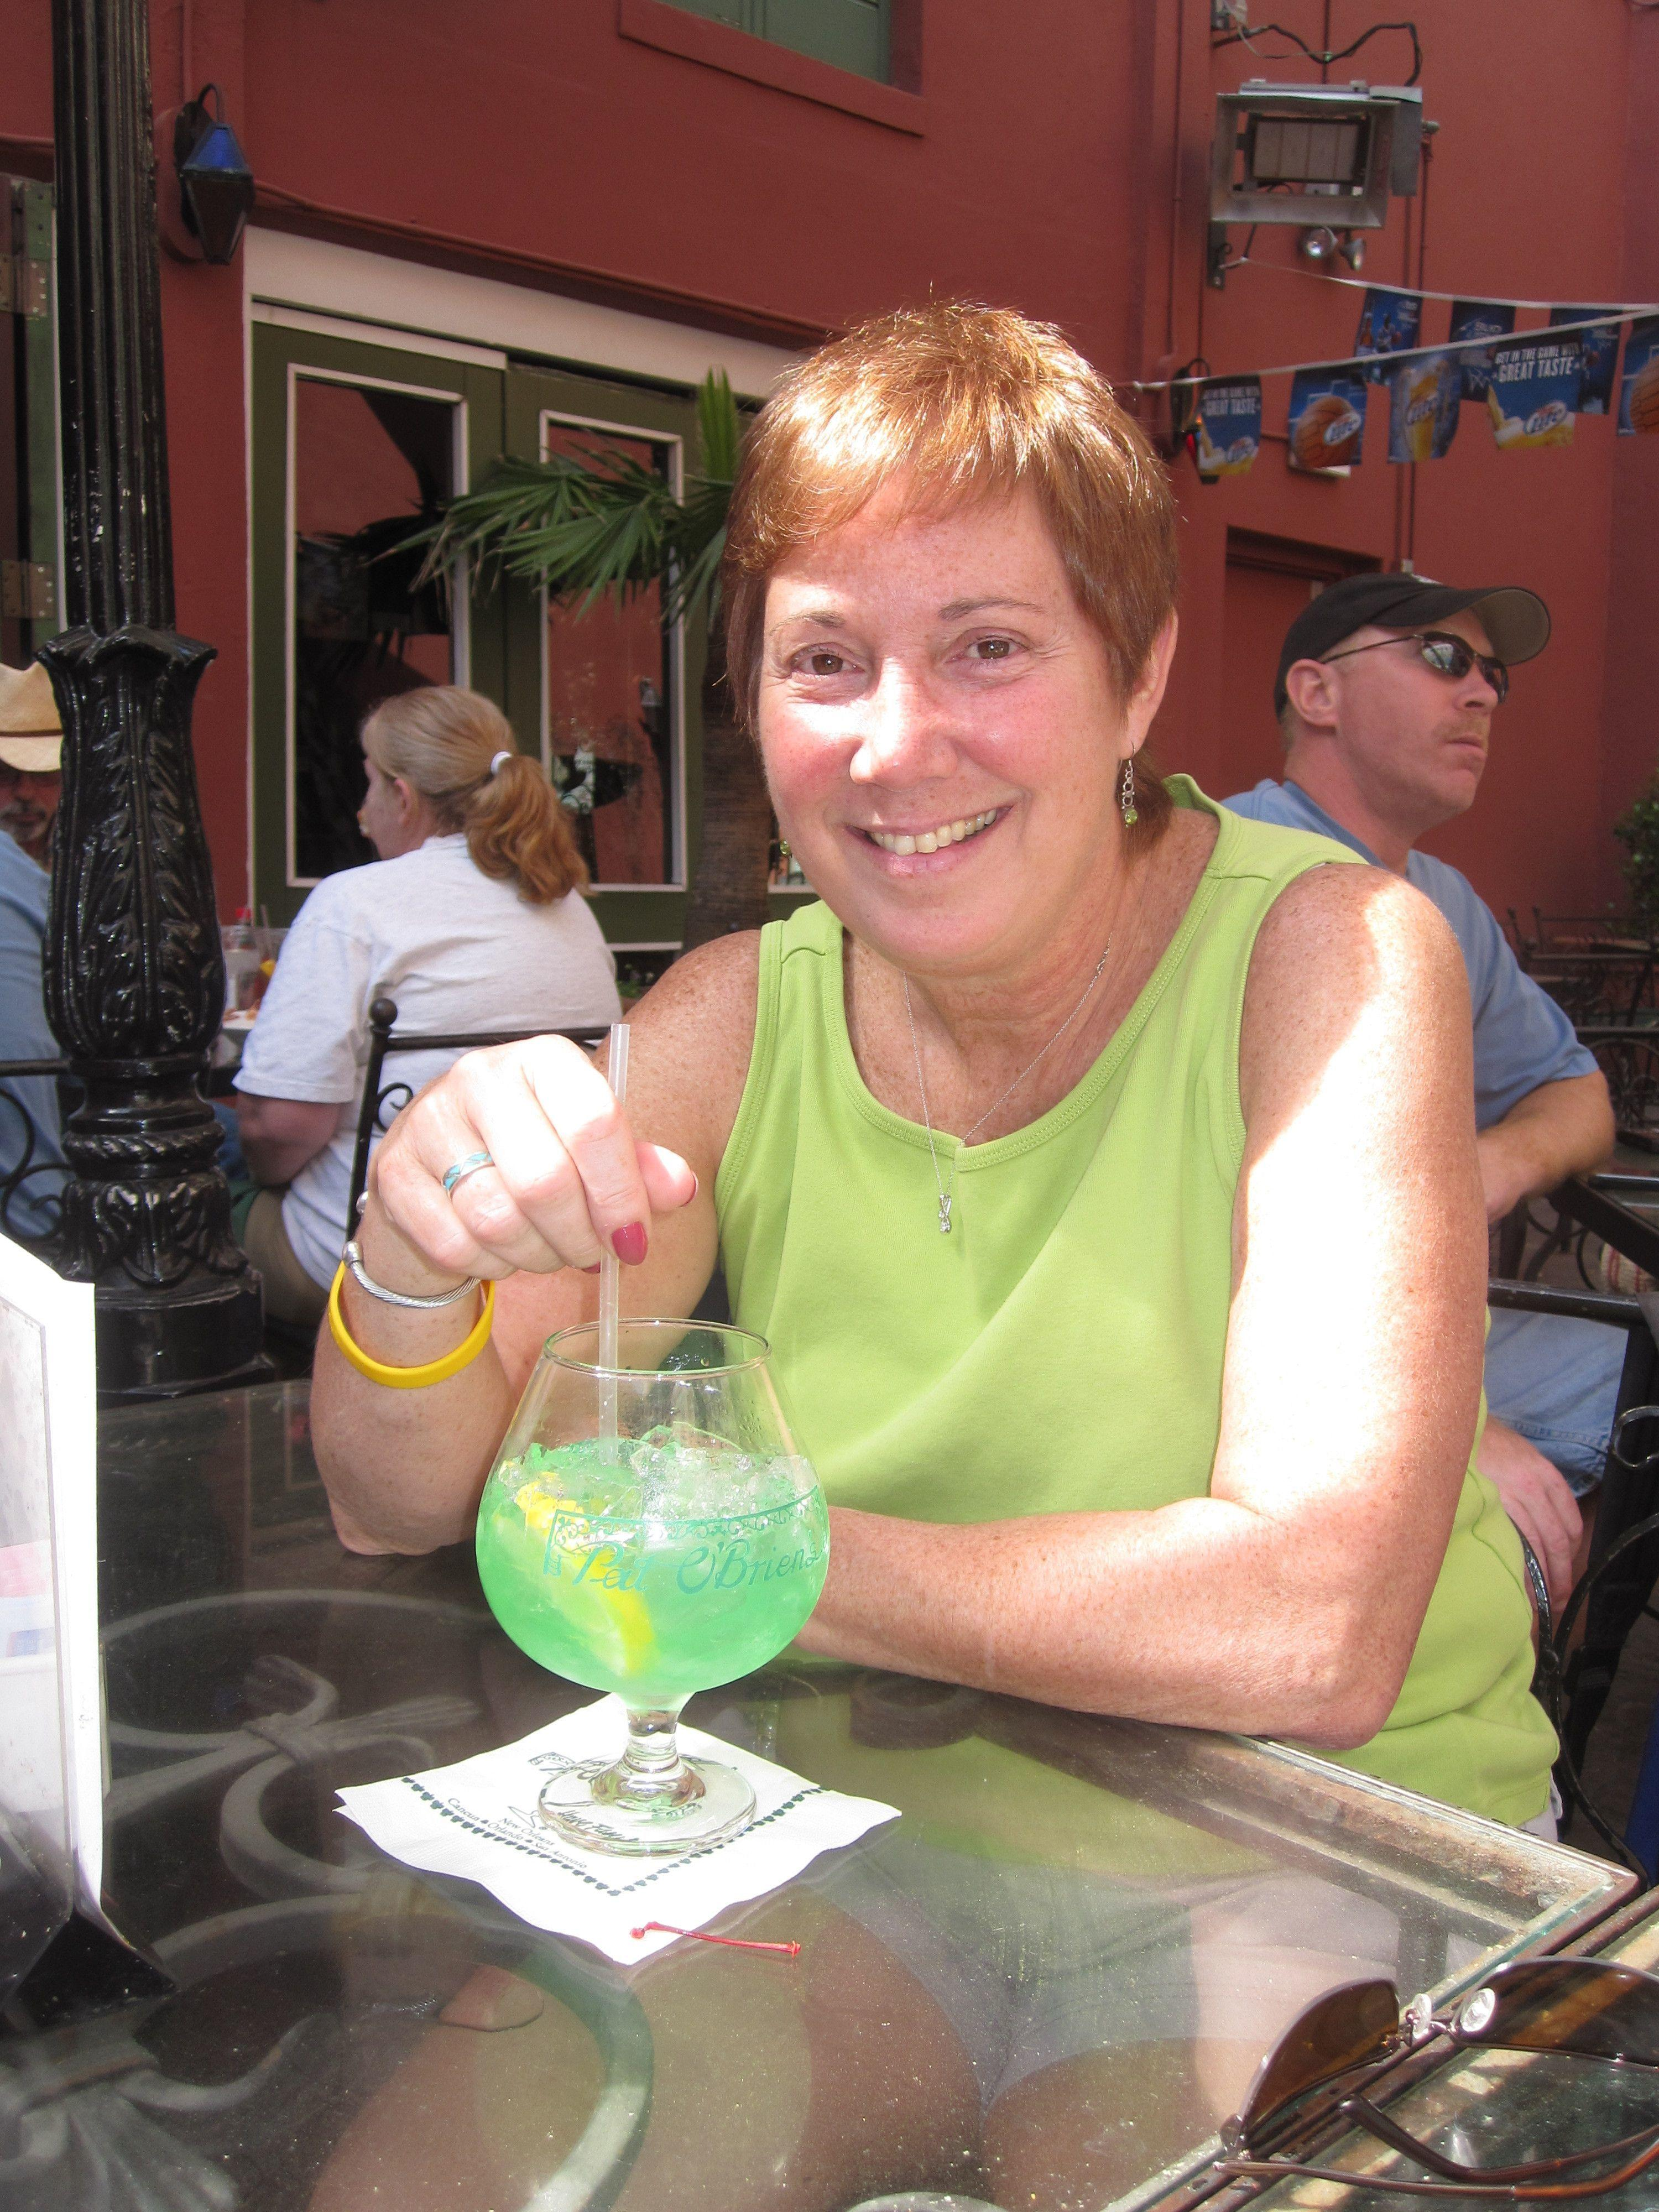 single lesbian women in west middletown Single west haven older women interested in senior dating are you looking for west haven older women search through the latest members below and you may just see your ideal date.